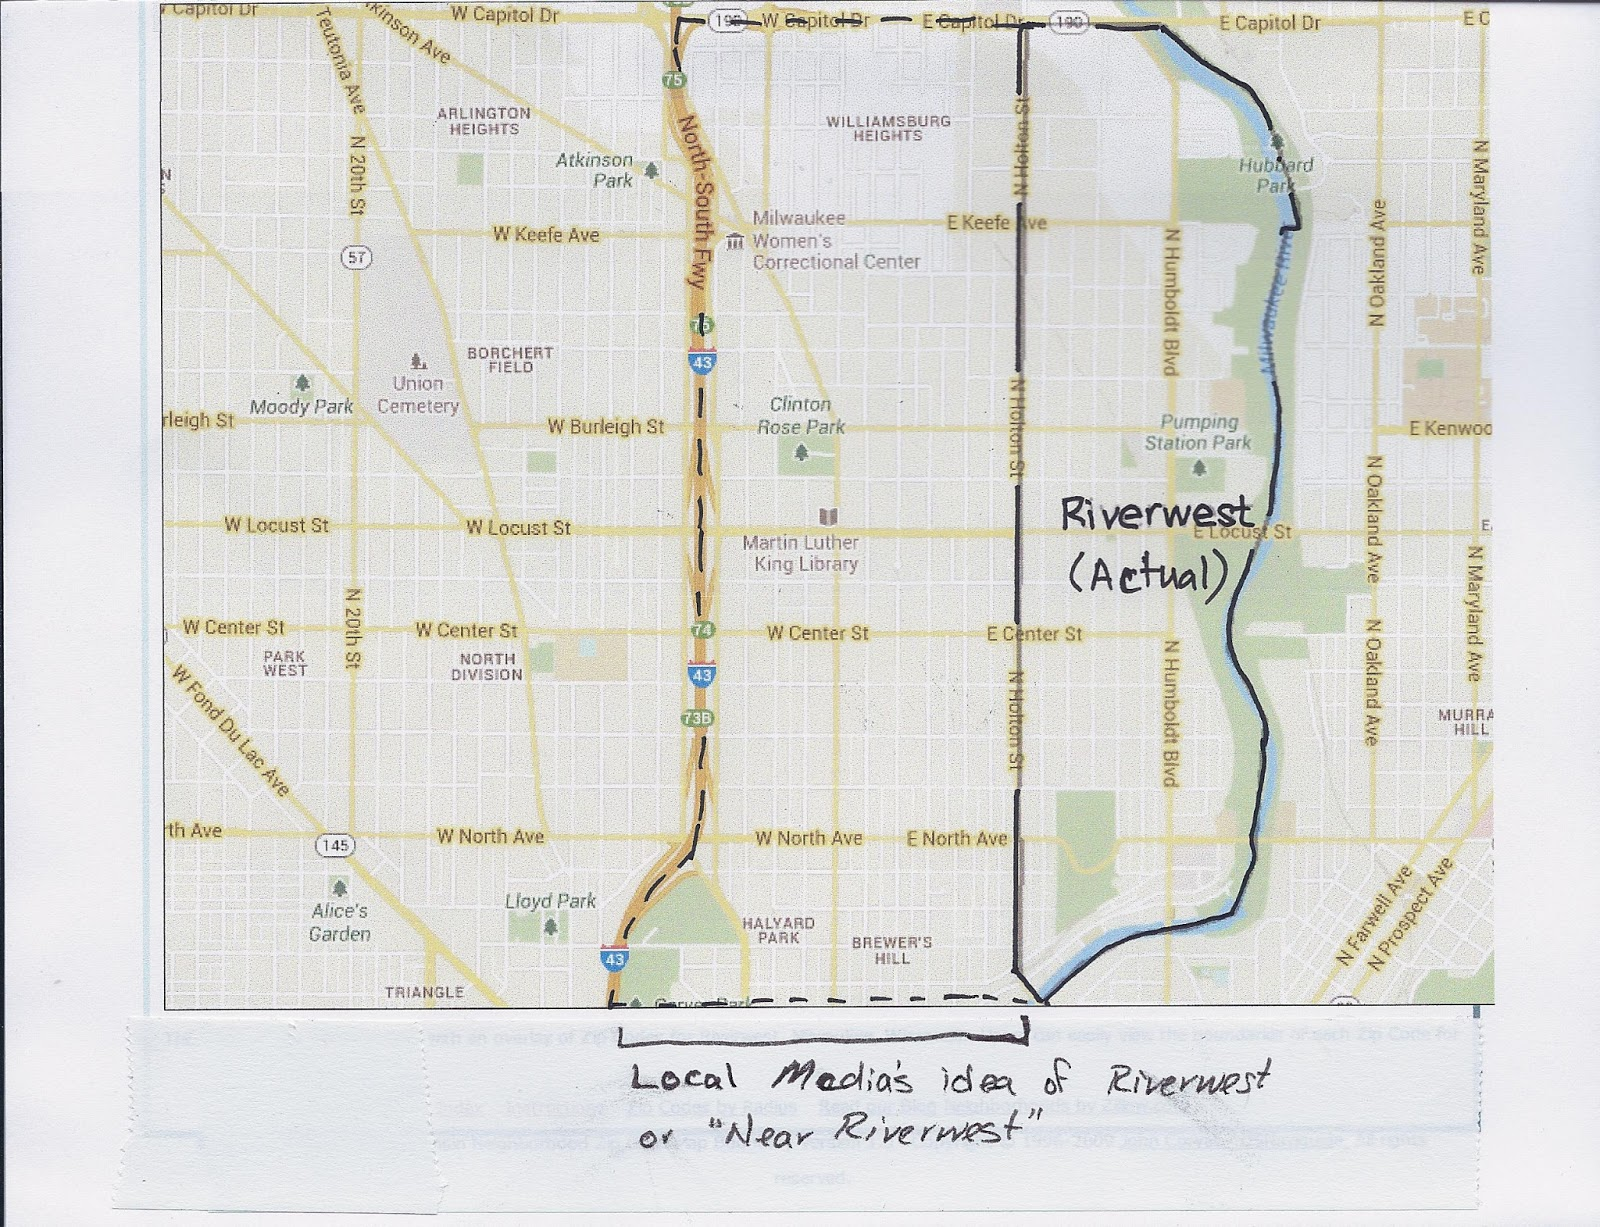 referred to this location as near riverwest i m not familiar with the near riverwest neighborhood can anyone show me this on the attached map